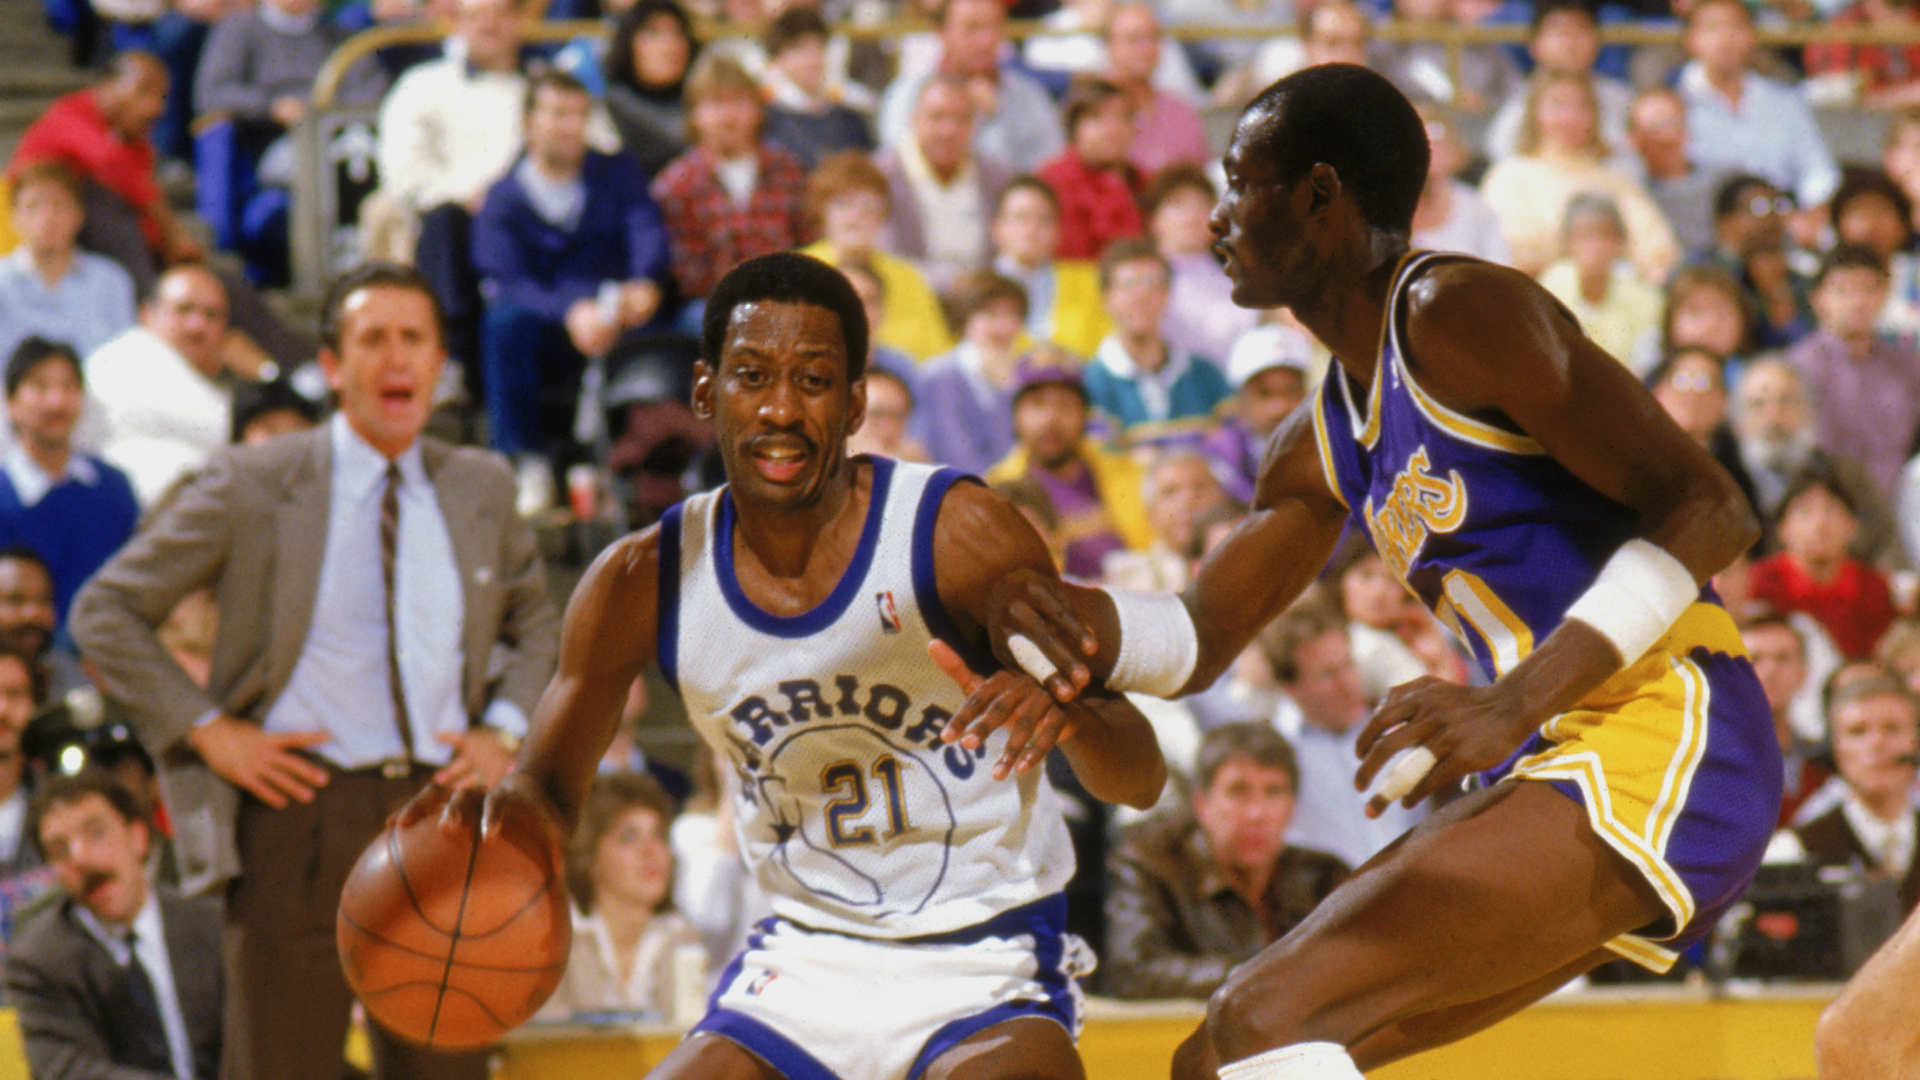 f5c3be0a Rumor: Warriors adding a throwback, plus alternate slate The Town jersey  for 2017-2018 season [UPDATE]